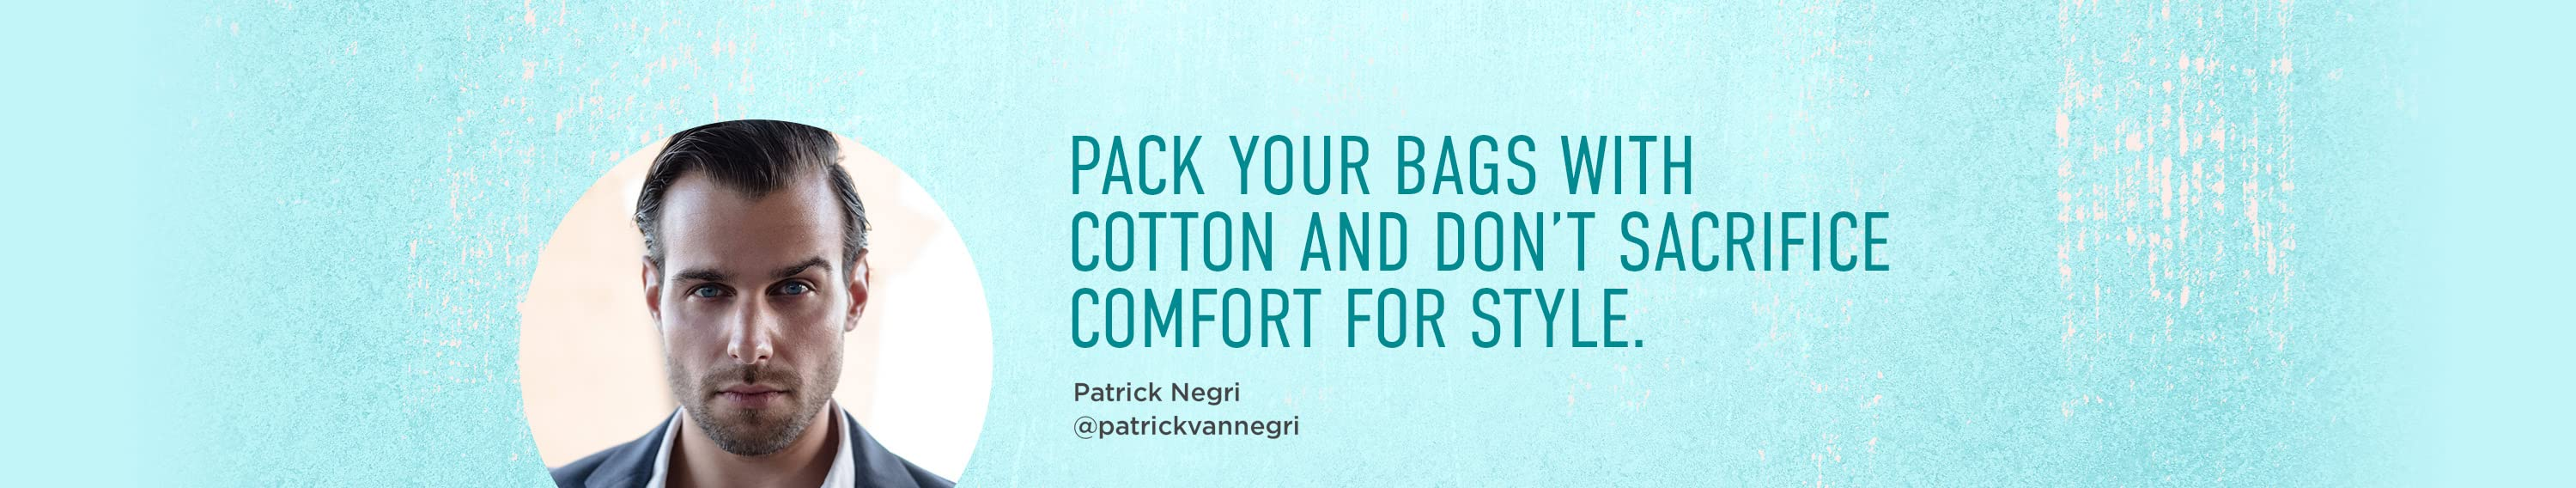 PACK YOUR BAGS WITH COTTON AND DON'T sacrifice COMFORT FOR STYLE.